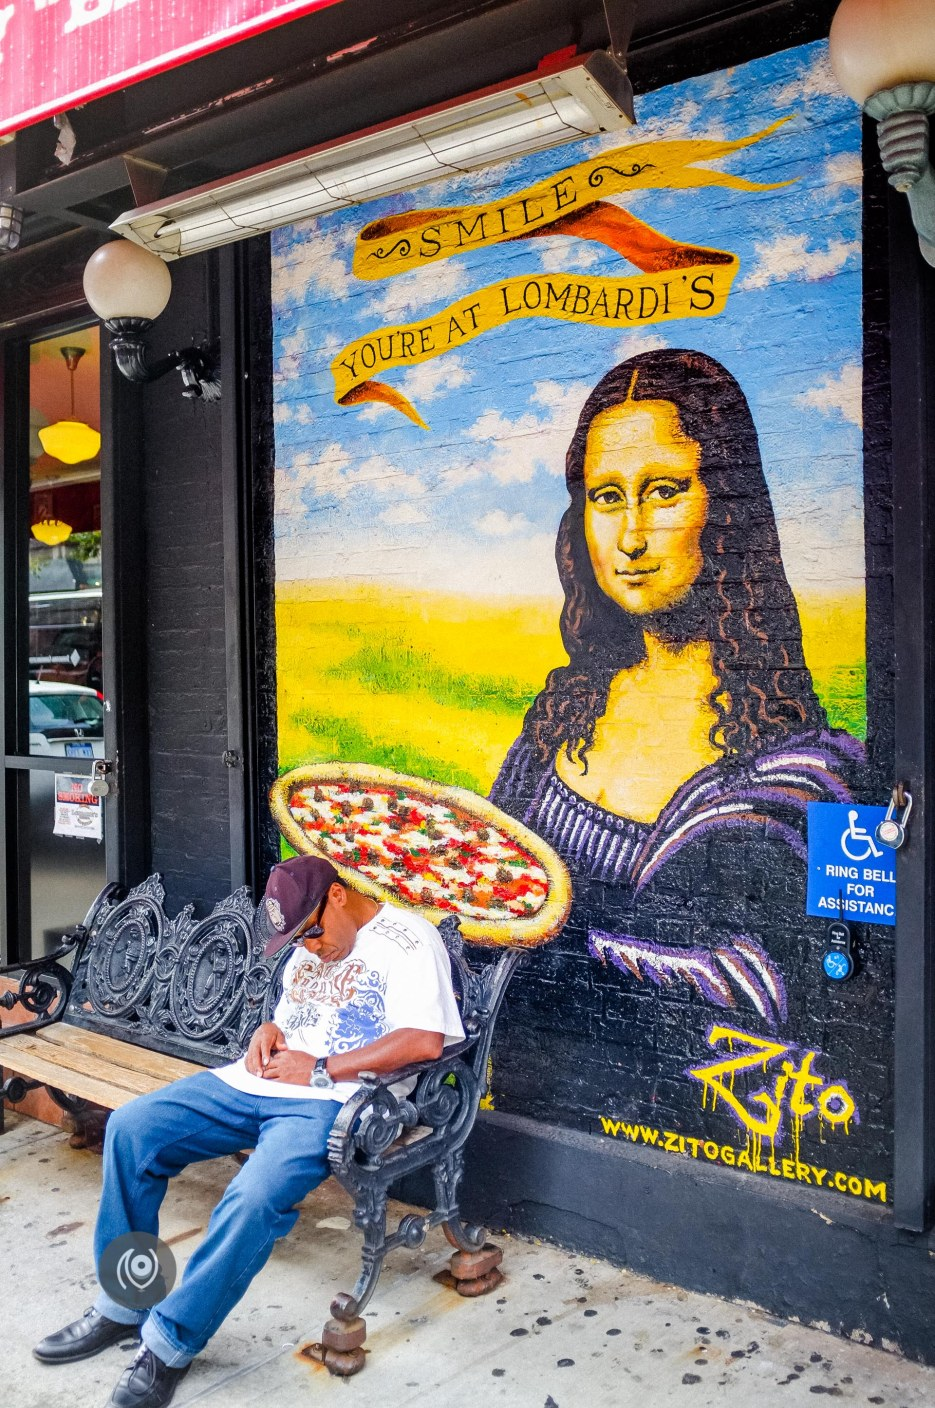 Lombardi's Pizza #EyesForDining #EyesForNewYork #REDHUxNYC Naina.co Luxury & Lifestyle, Photographer Storyteller, Blogger